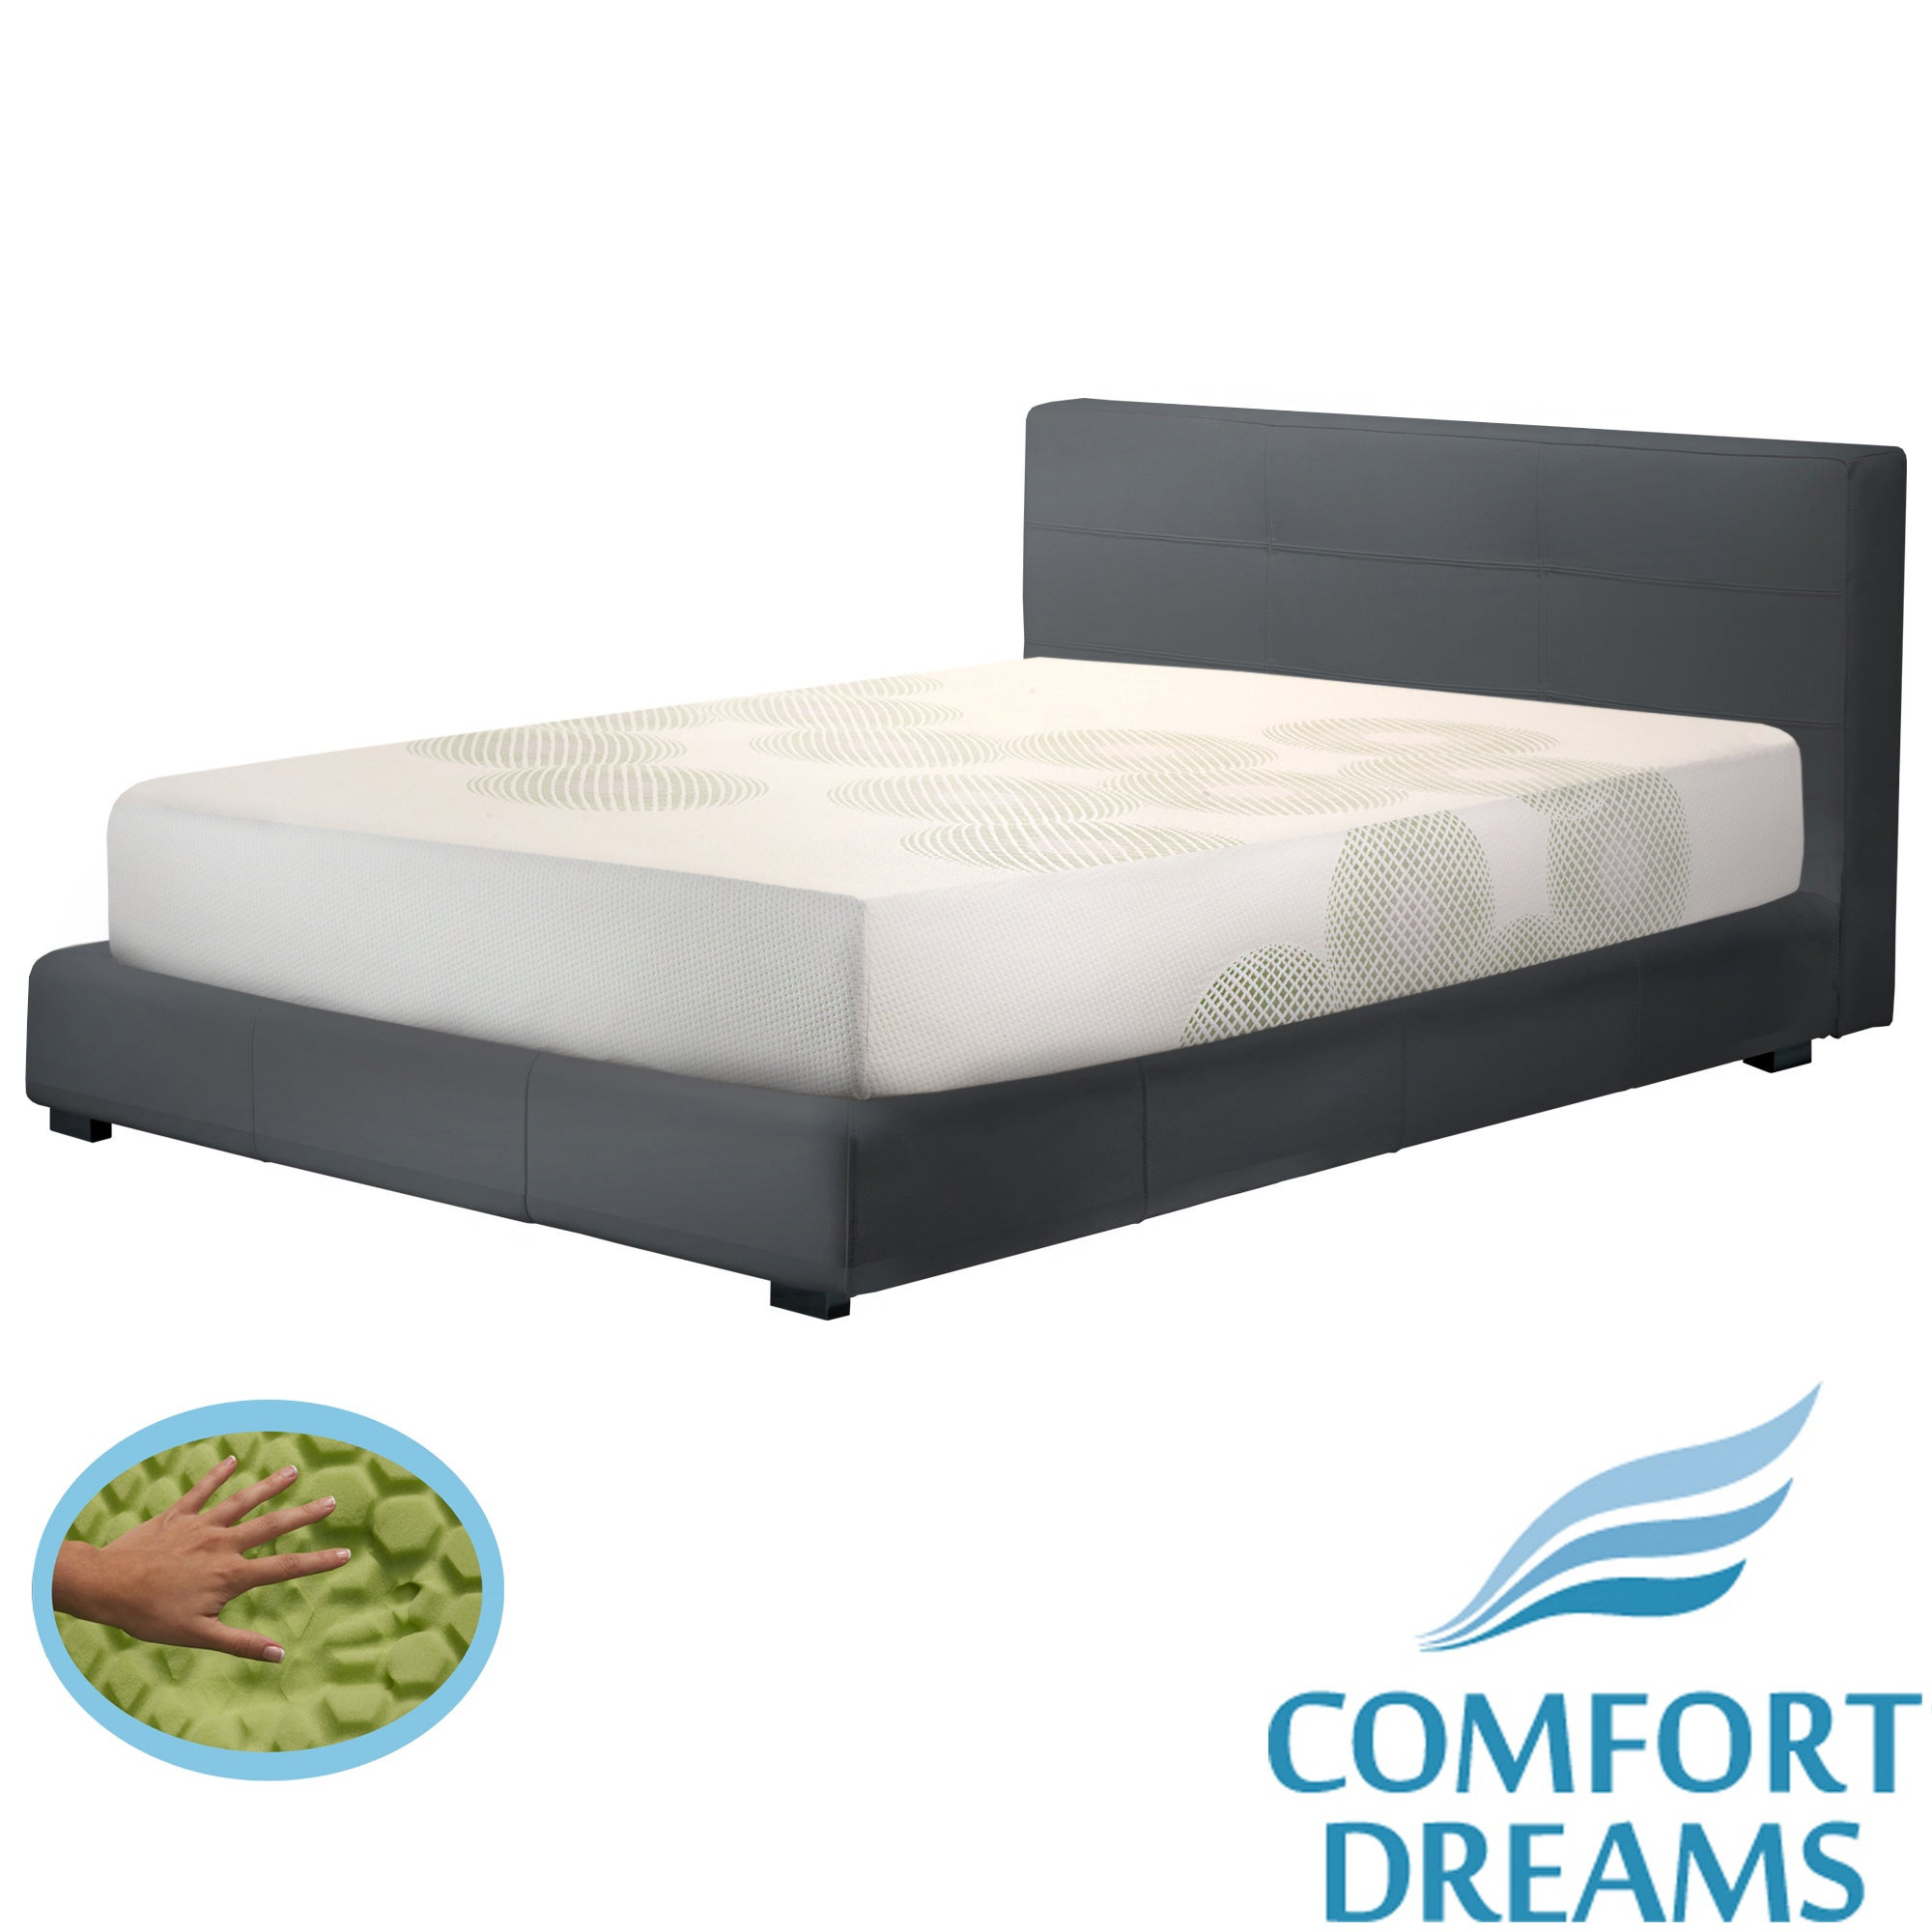 Comfort Dreams Lifestyle Collection Overall Relief 10-inch King-size Memory Foam Mattress at Sears.com